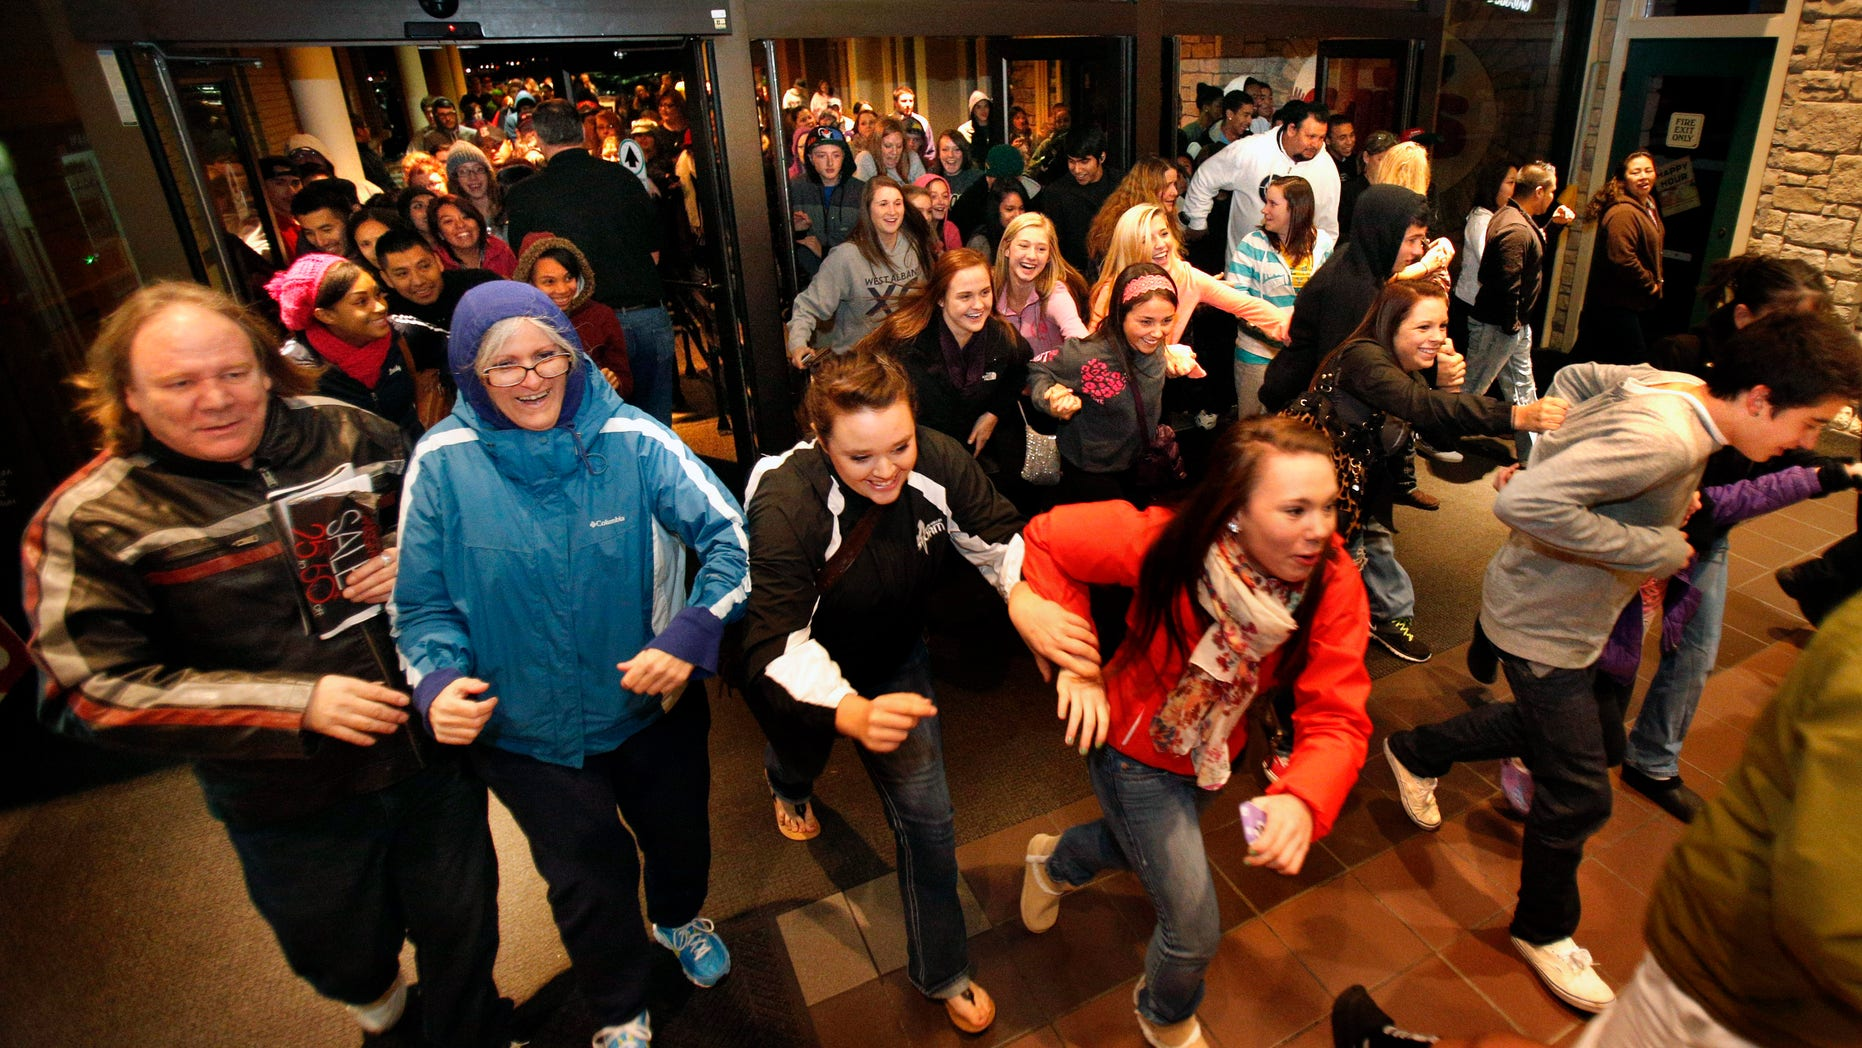 Nov. 23, 2012: Black Friday shoppers pour into the Valley River Center mall for the Midnight Madness sale, in Eugene, Ore.